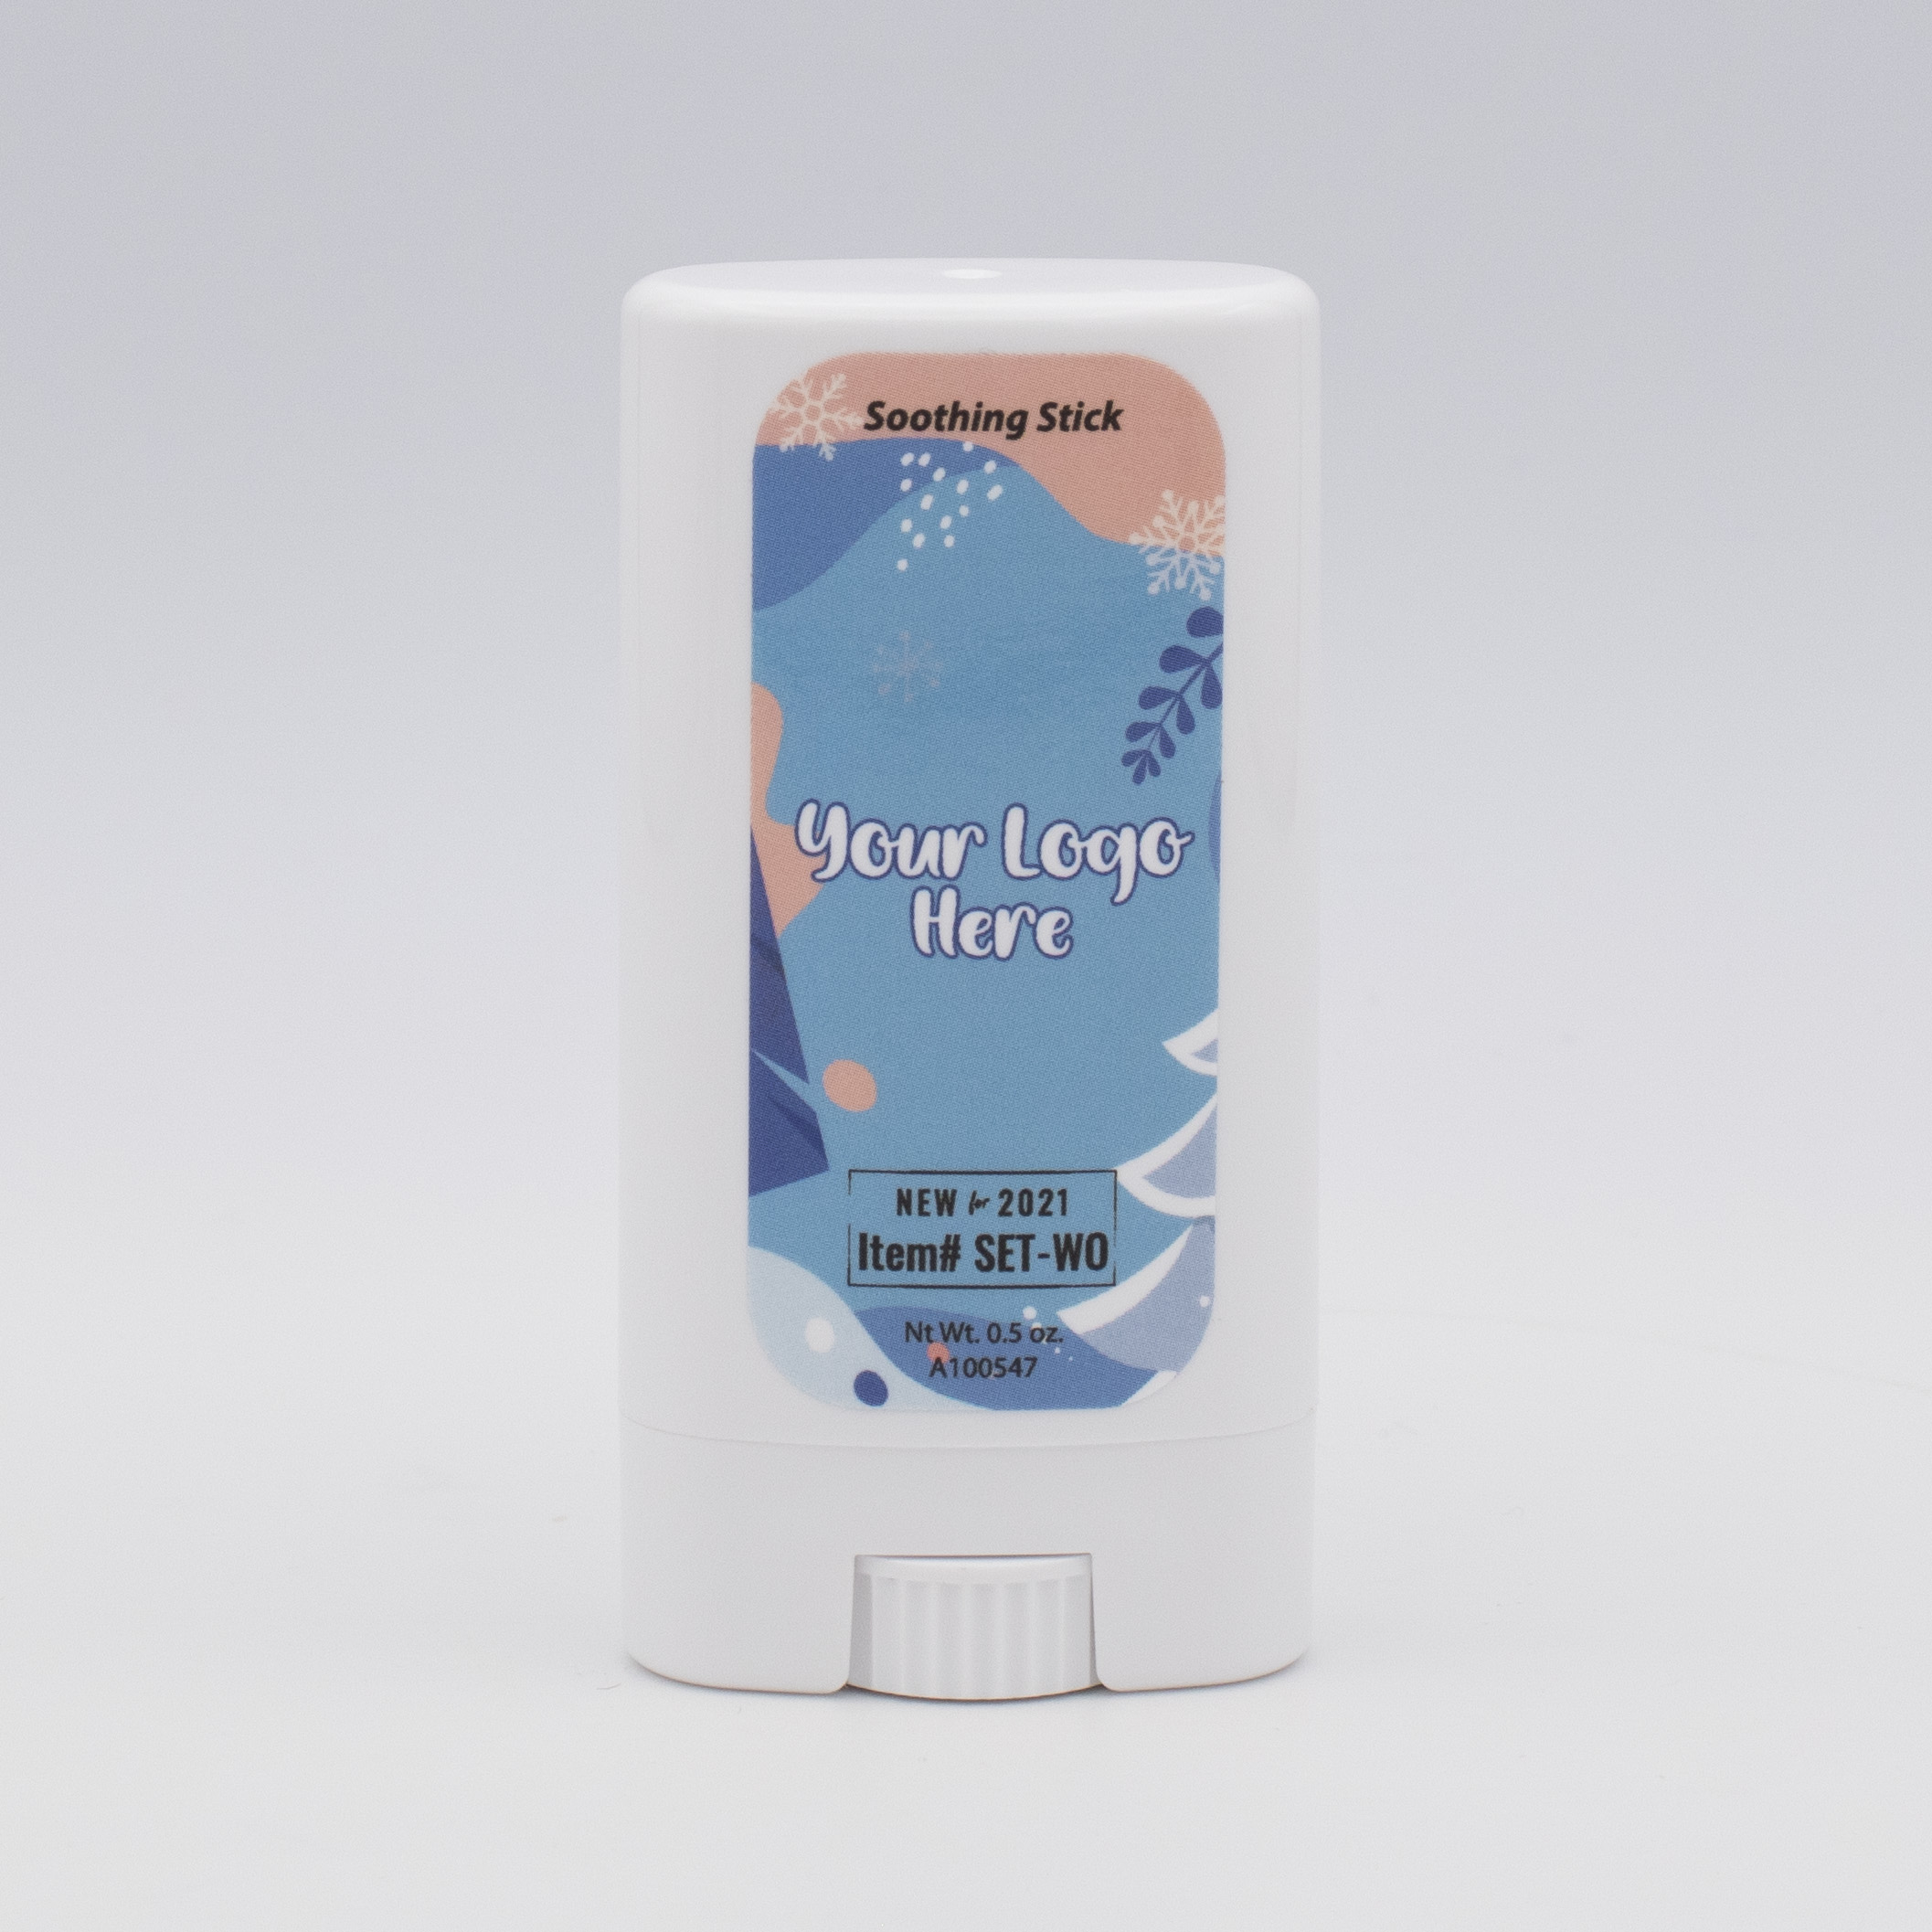 Soothing Stick